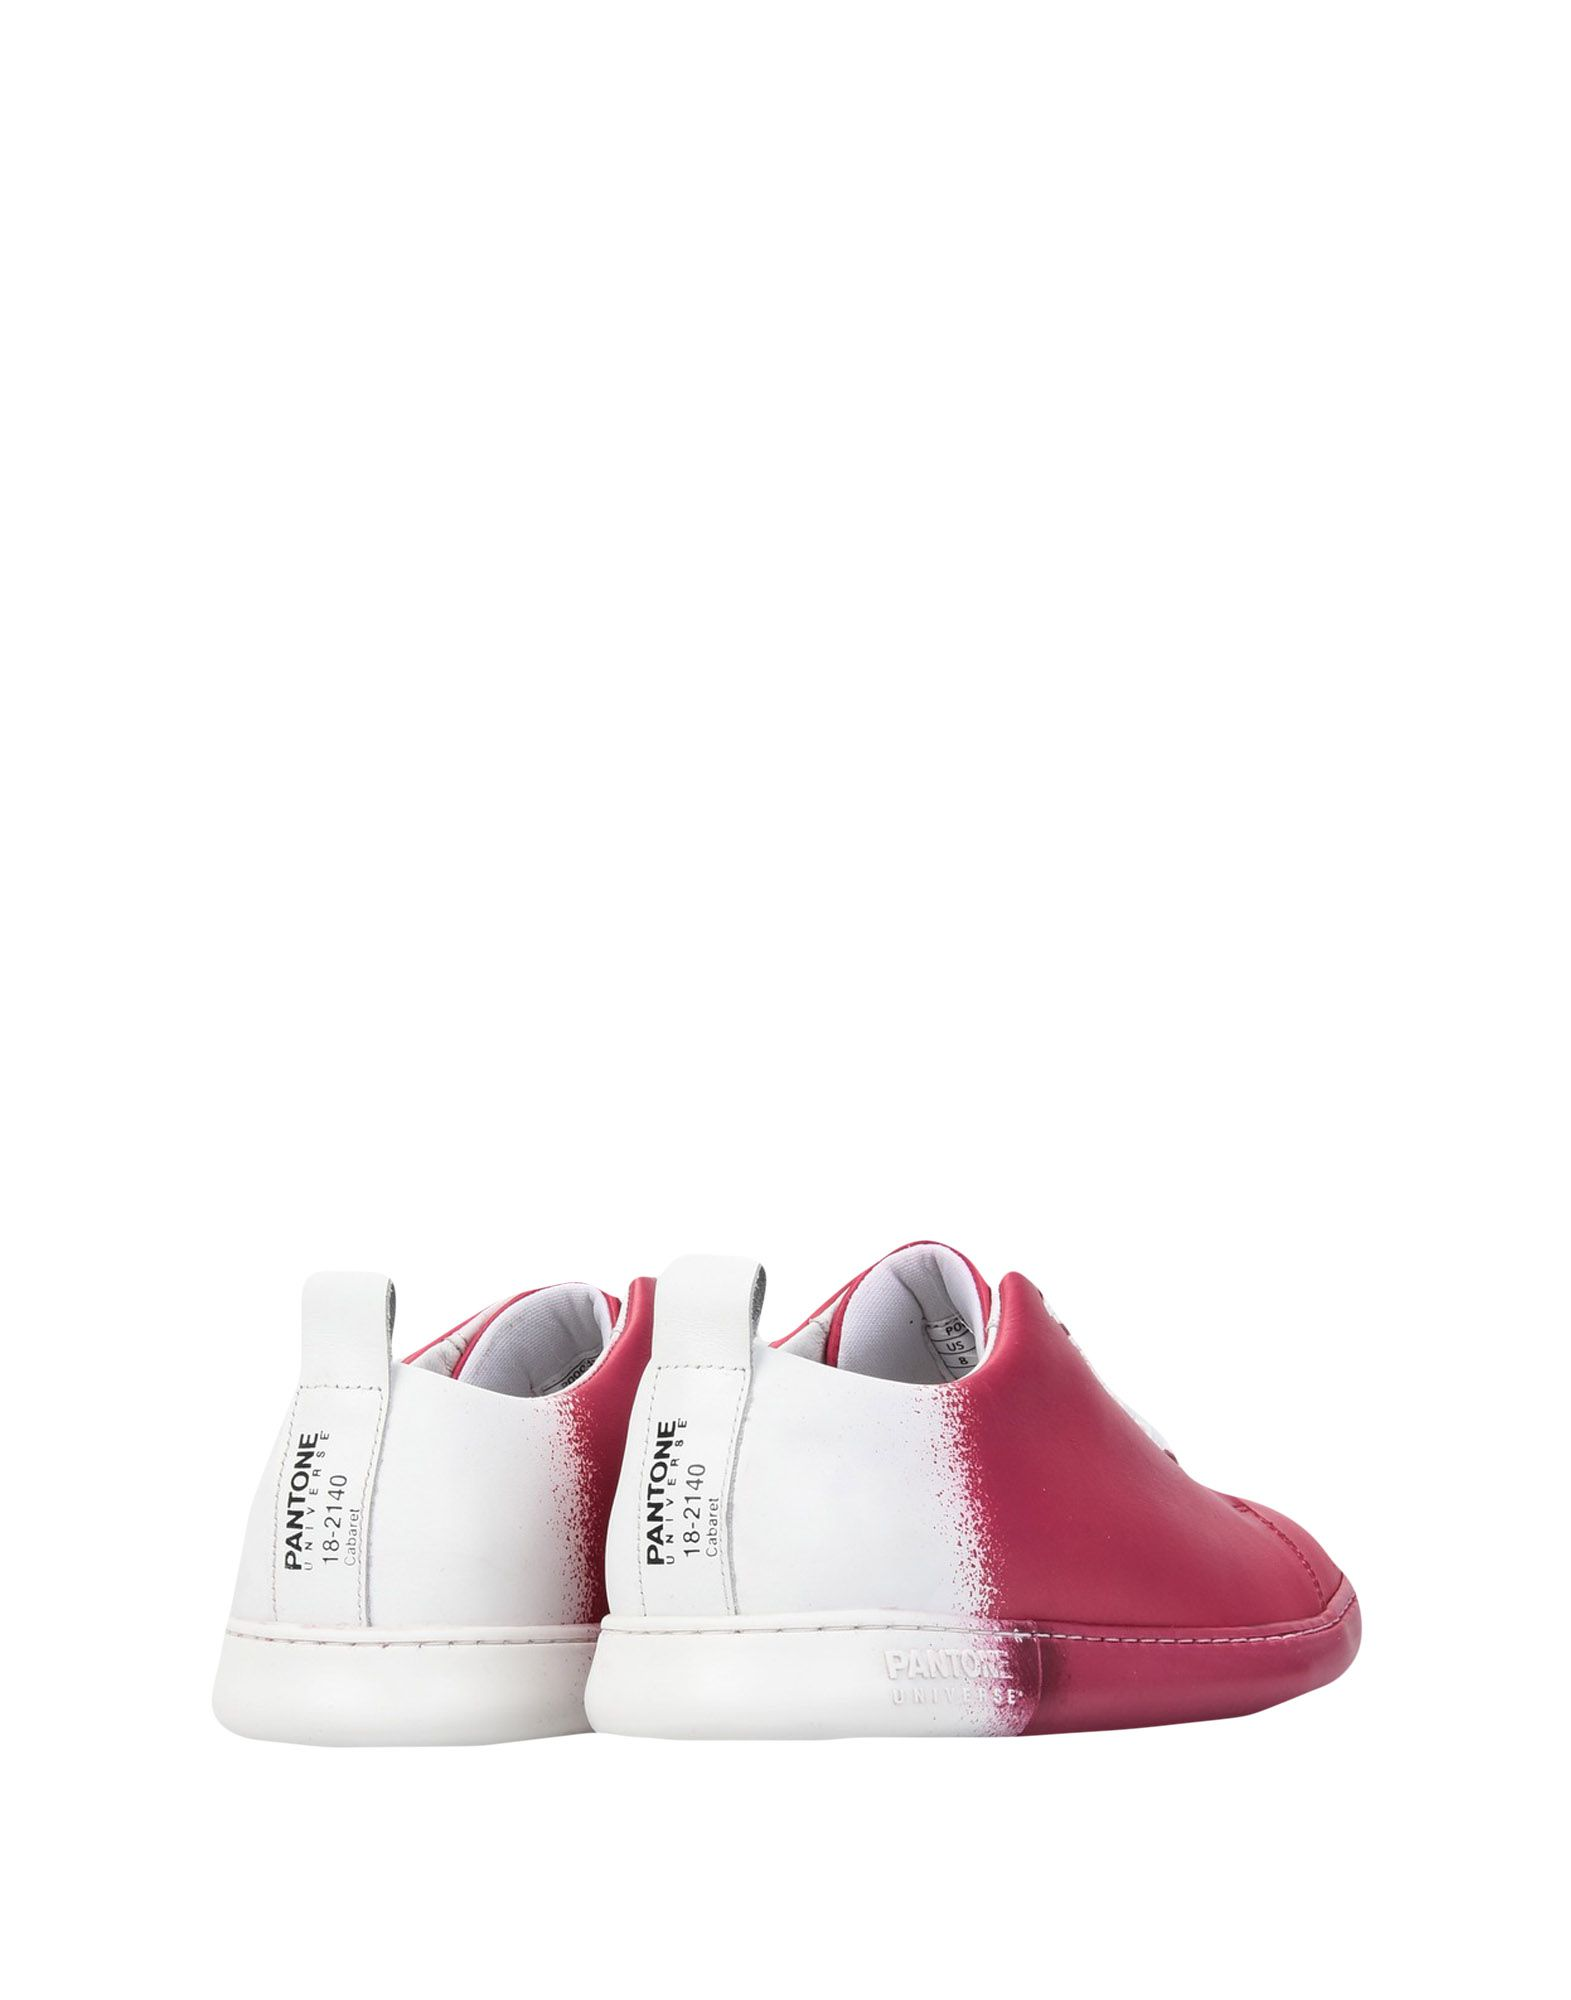 Pantone Universe Sneakers Nyc Printed Leather - Sneakers Universe - Women Pantone Universe Sneakers online on  Canada - 11224266WD d87f7b